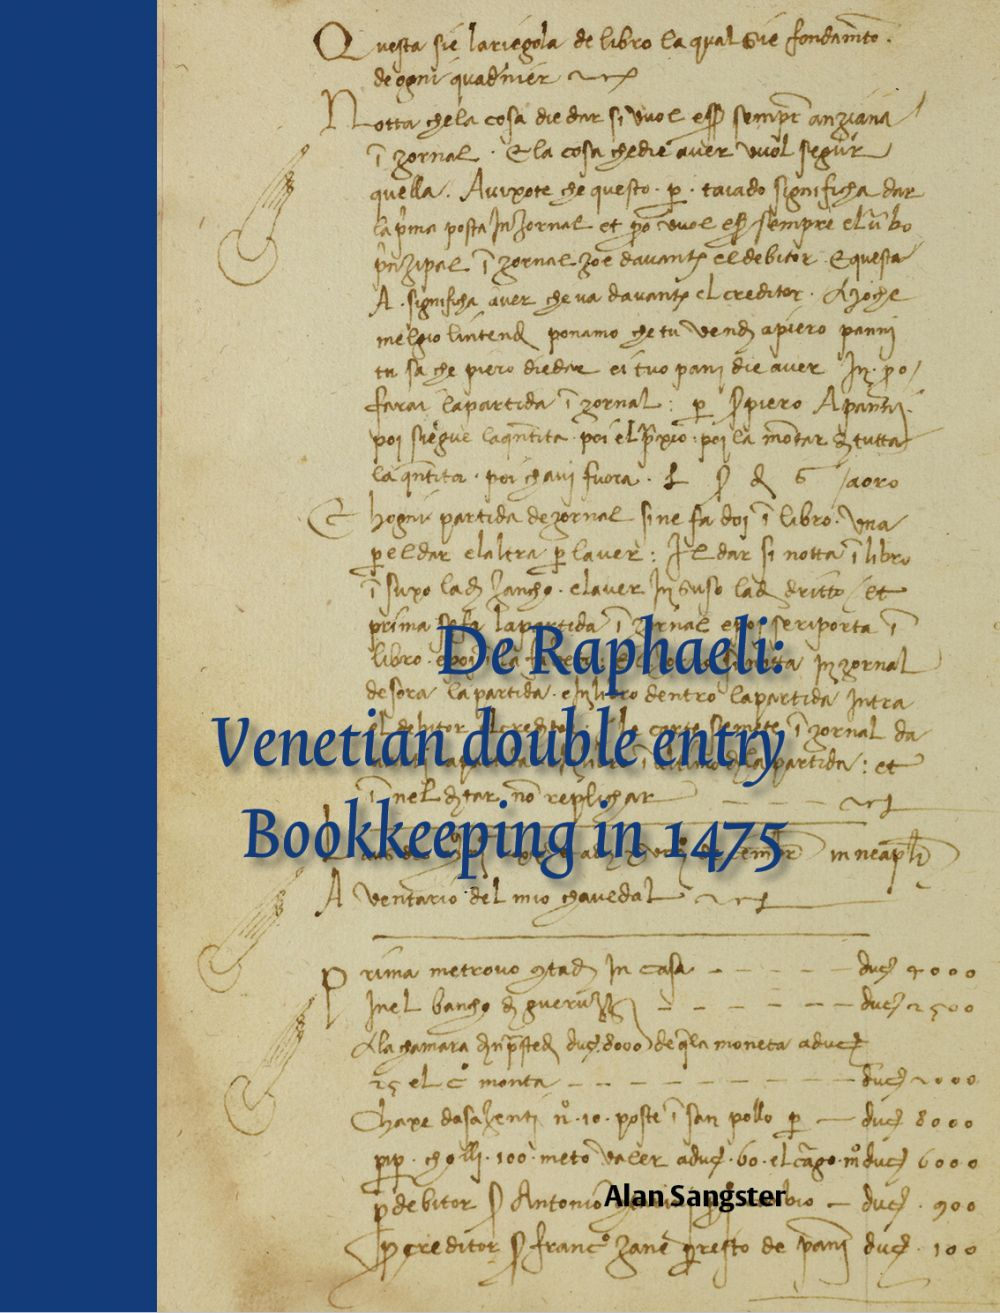 De Raphaeli: Venetian double entry bookkeeping in 1475